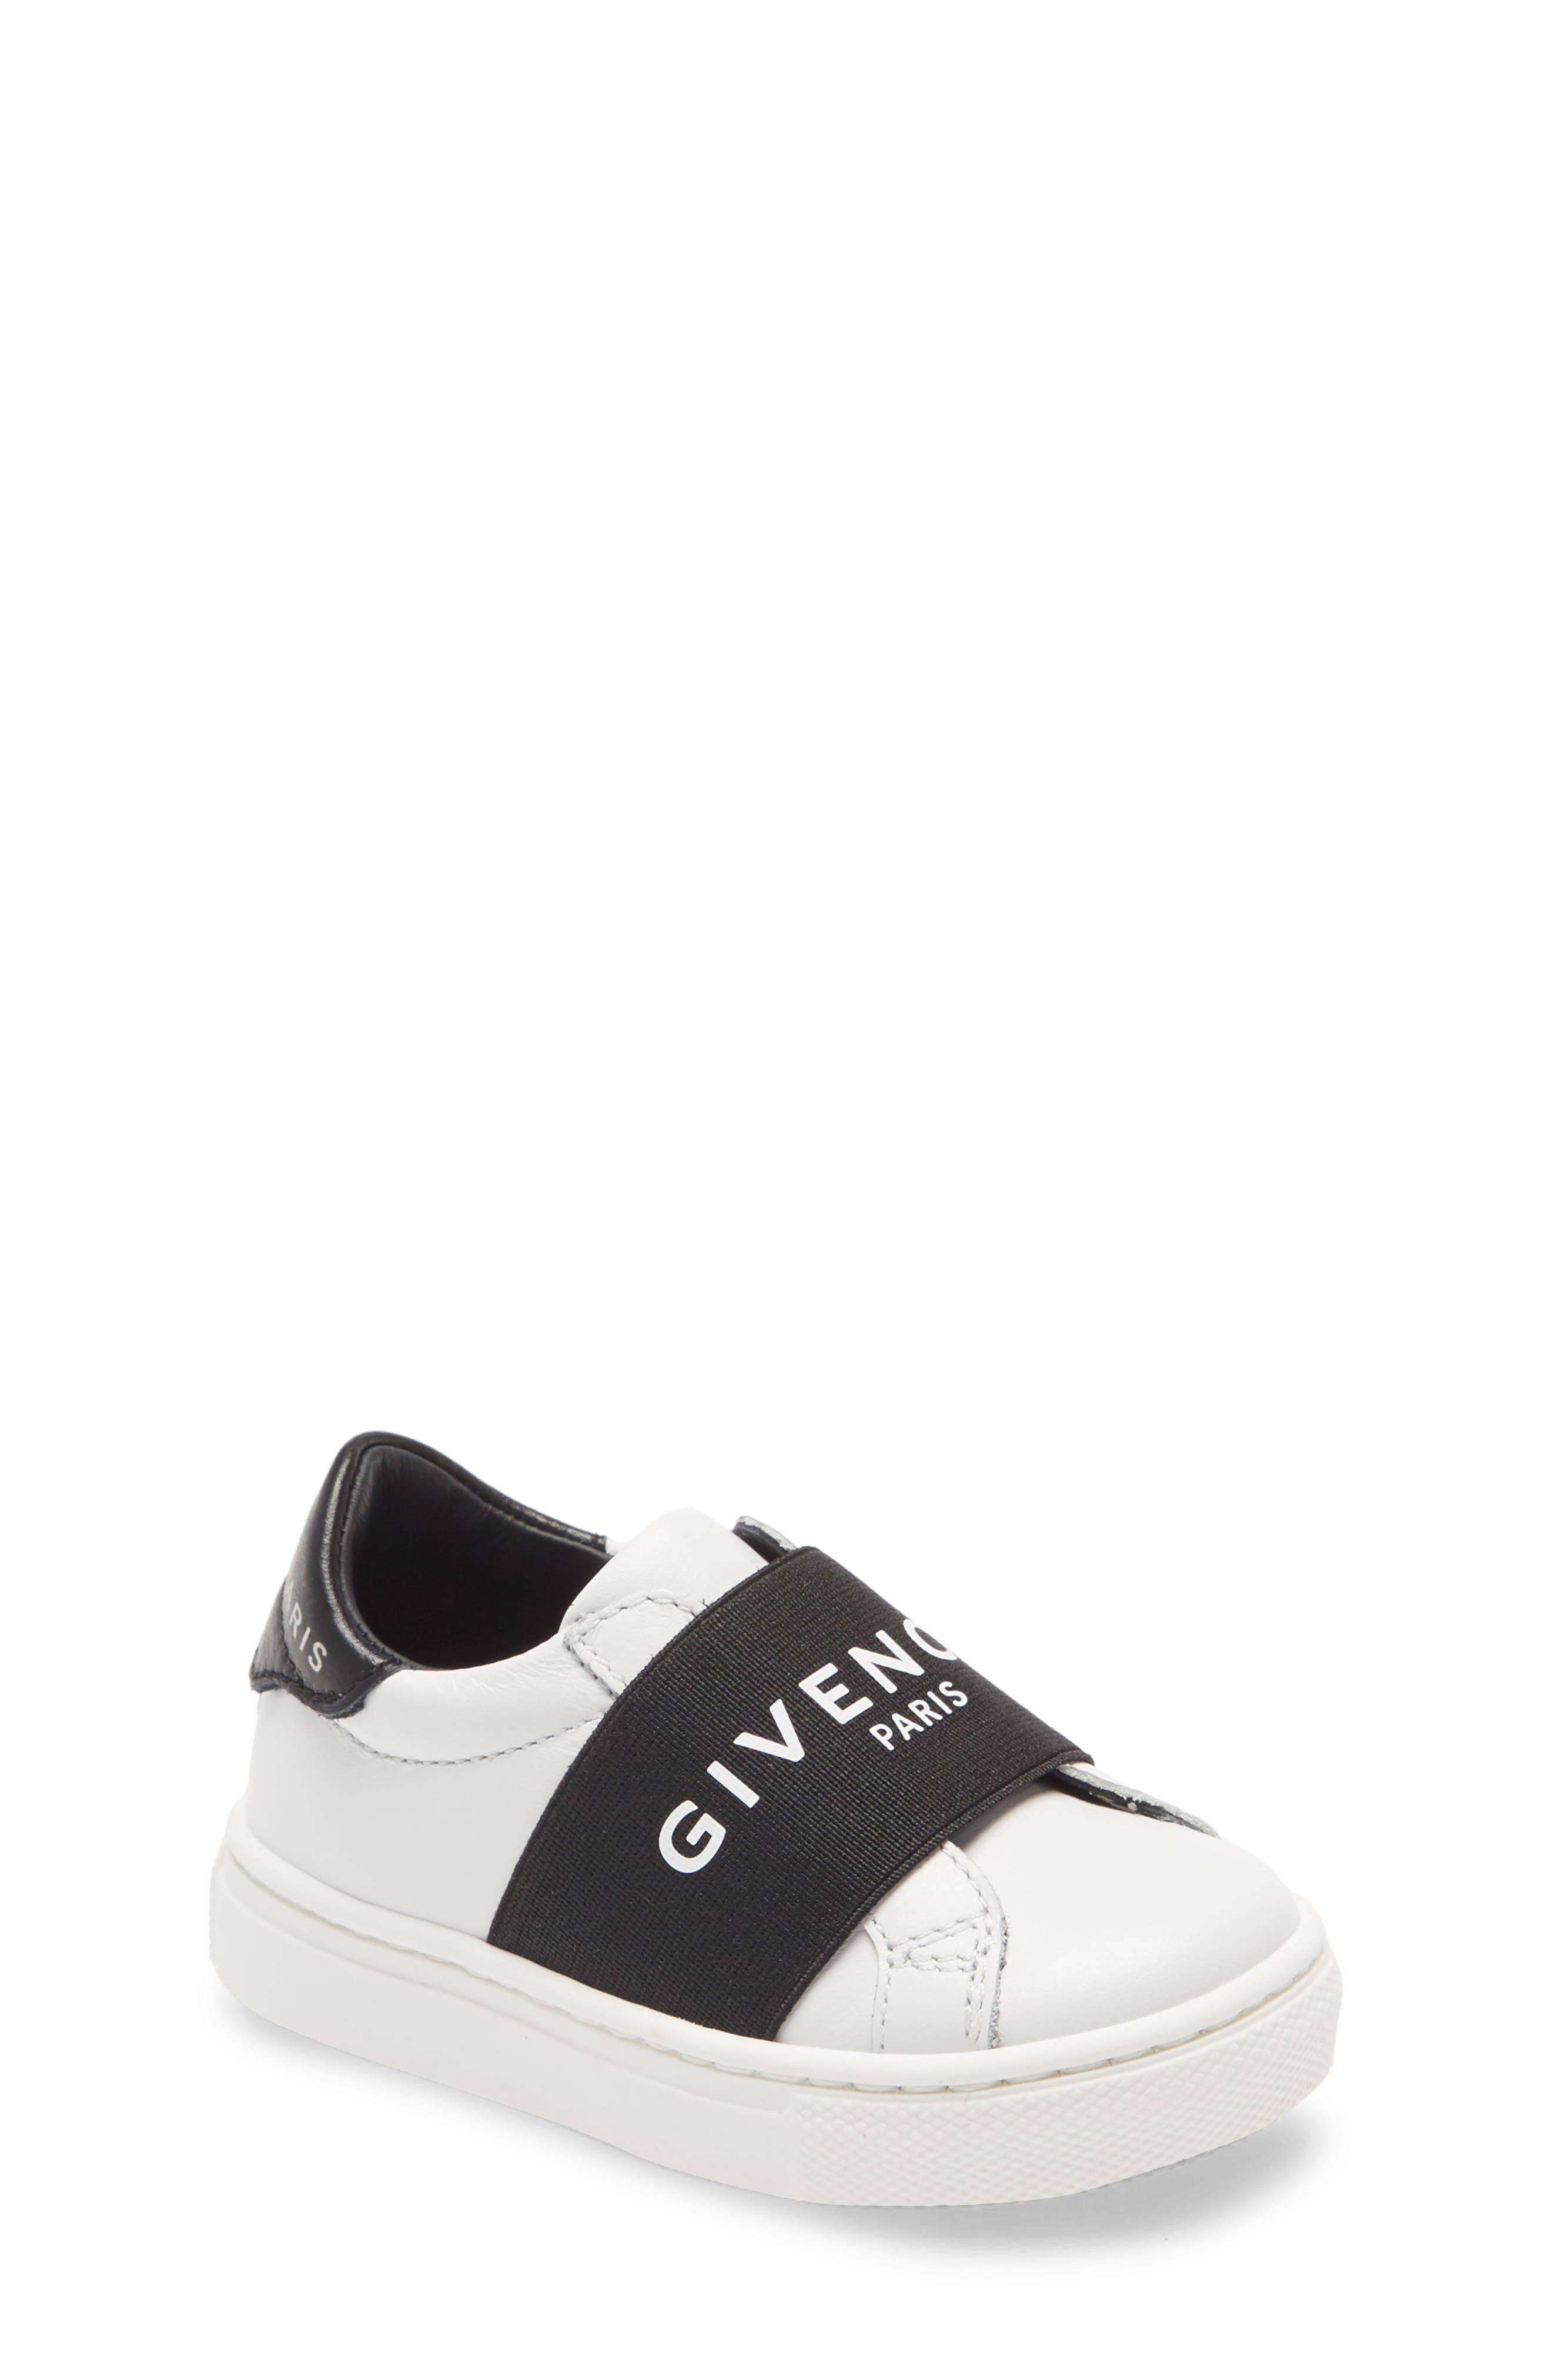 All Boys' Givenchy Sale   Nordstrom